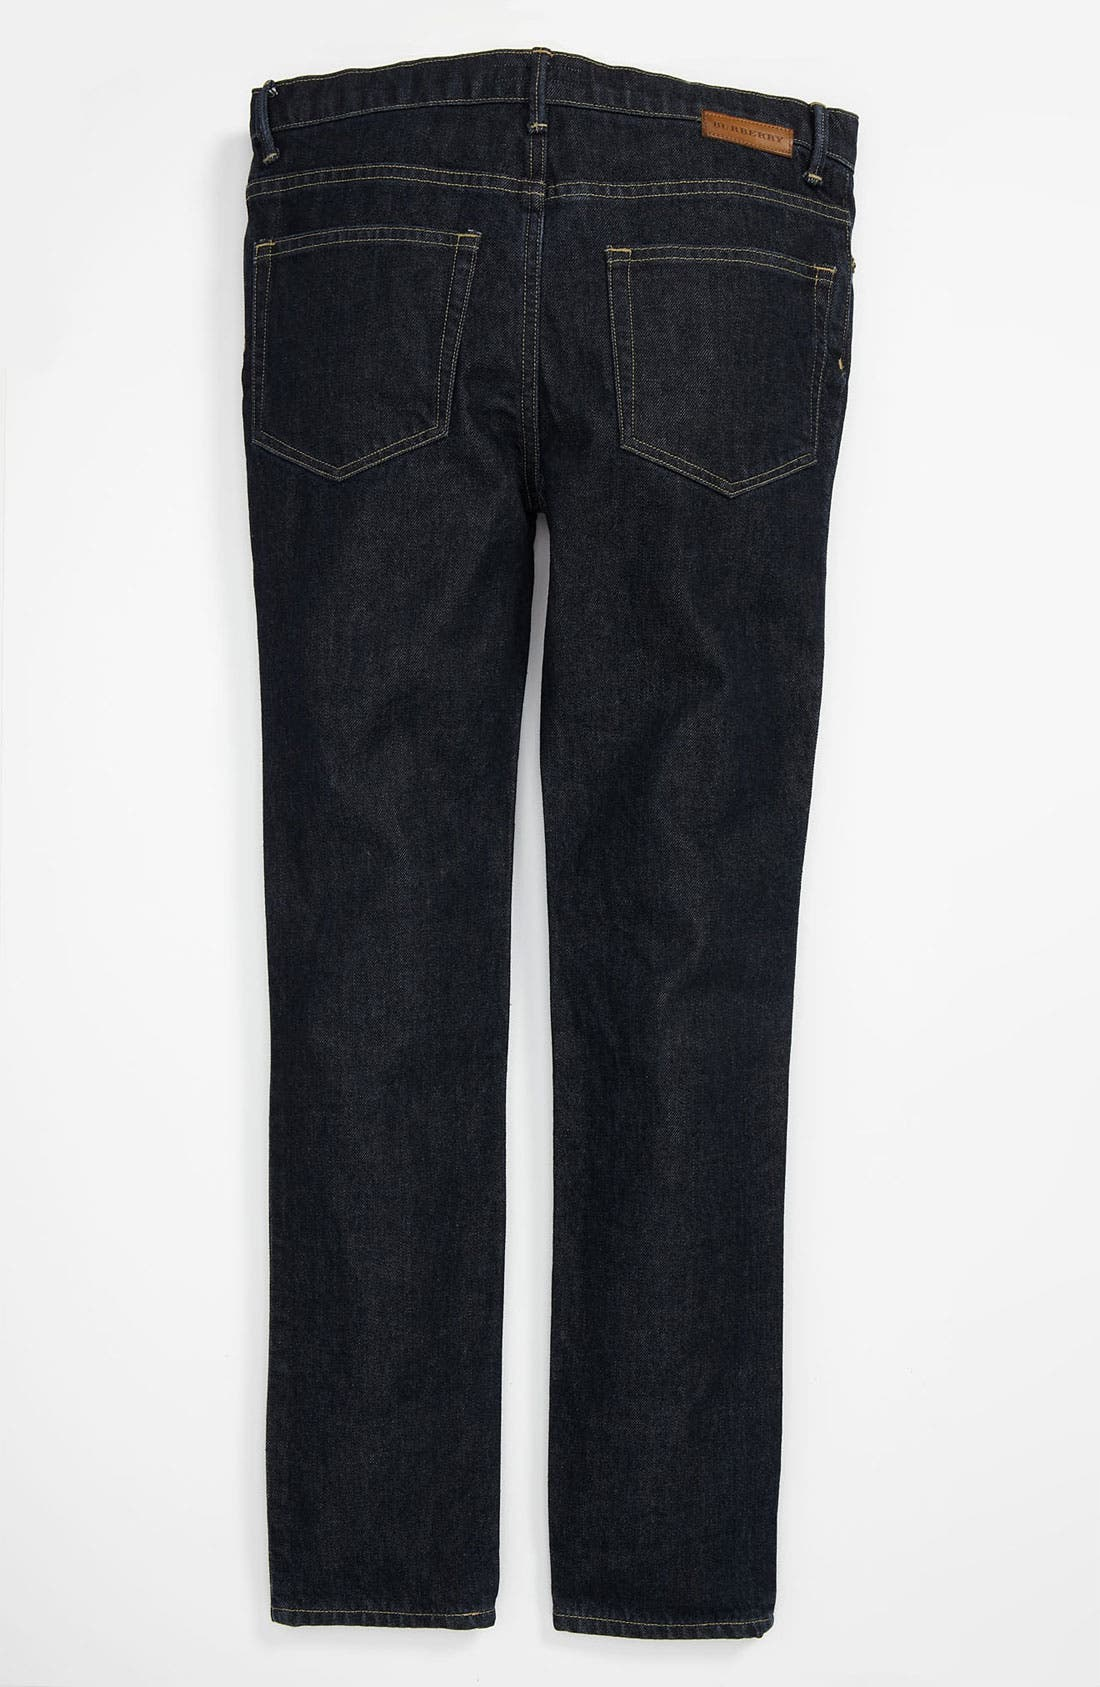 Main Image - Burberry Skinny Leg Jeans (Little Boys & Big Boys)